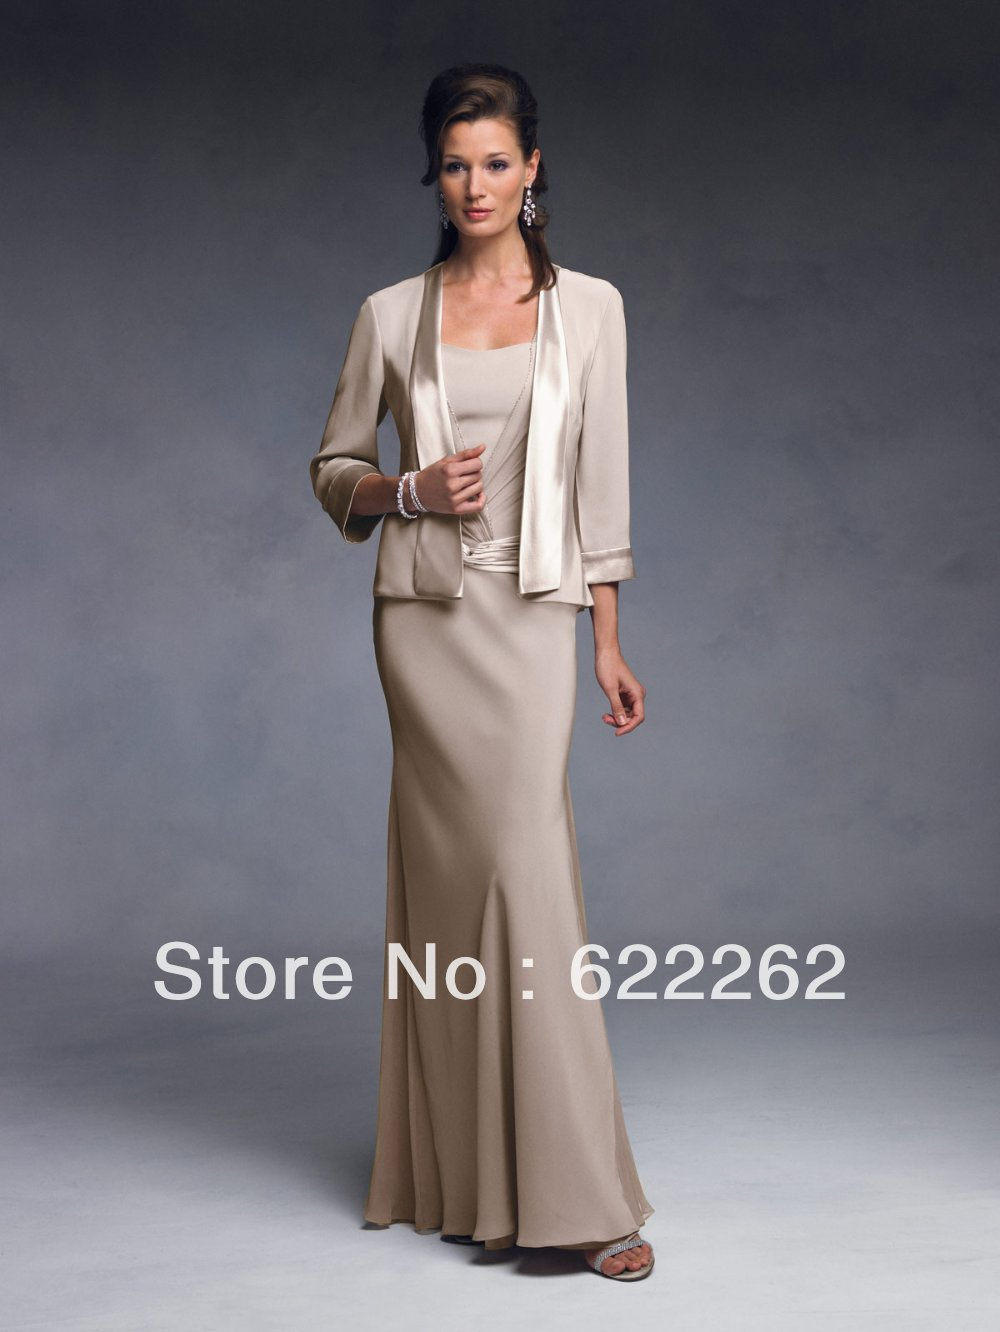 Compare Prices on Evening Dresses Jacket- Online Shopping/Buy Low